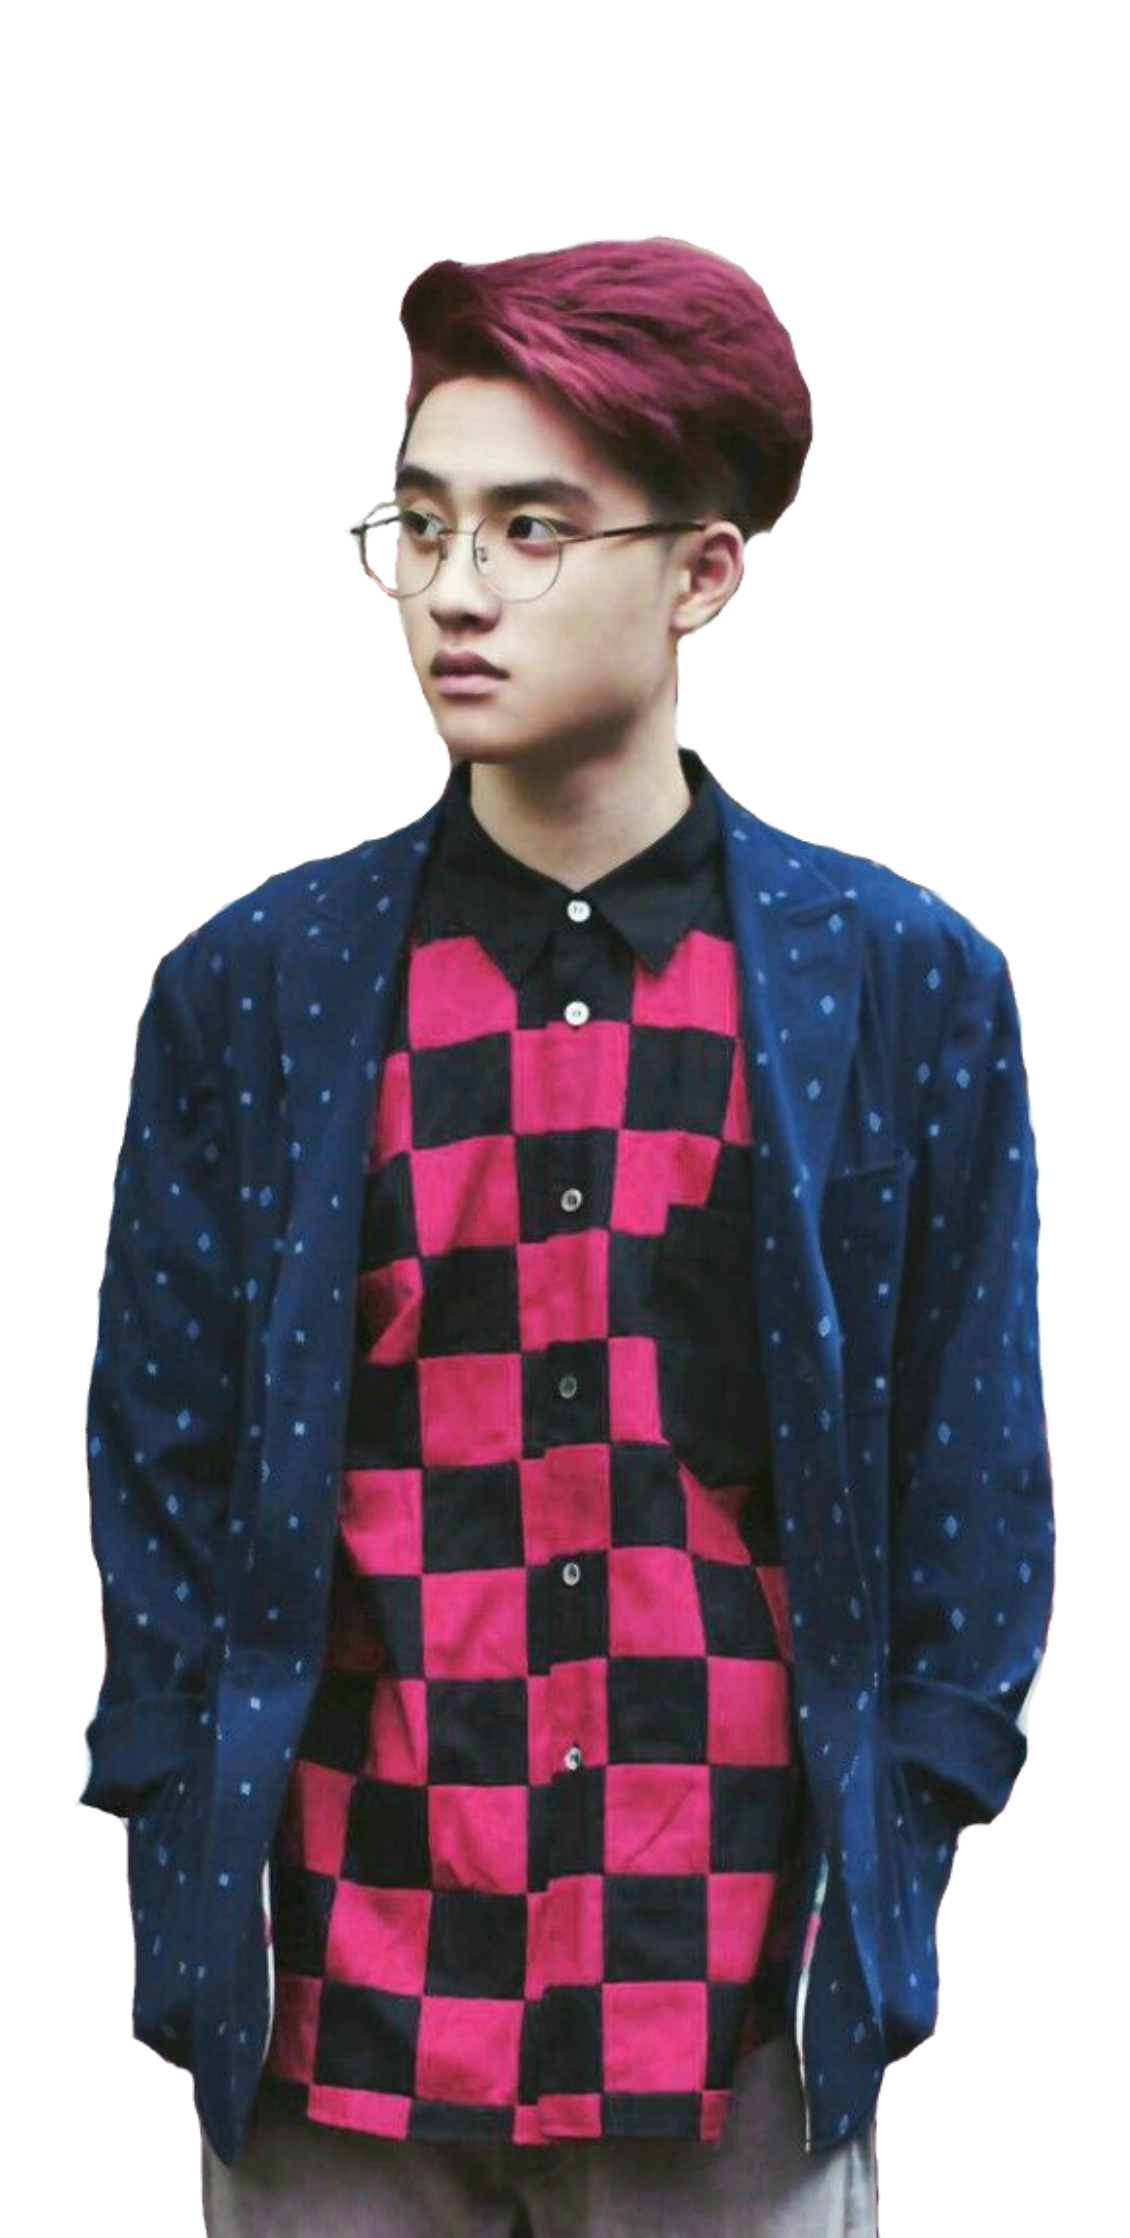 Do kyungsoo png wallpapers. Transparent kpop background banner free download